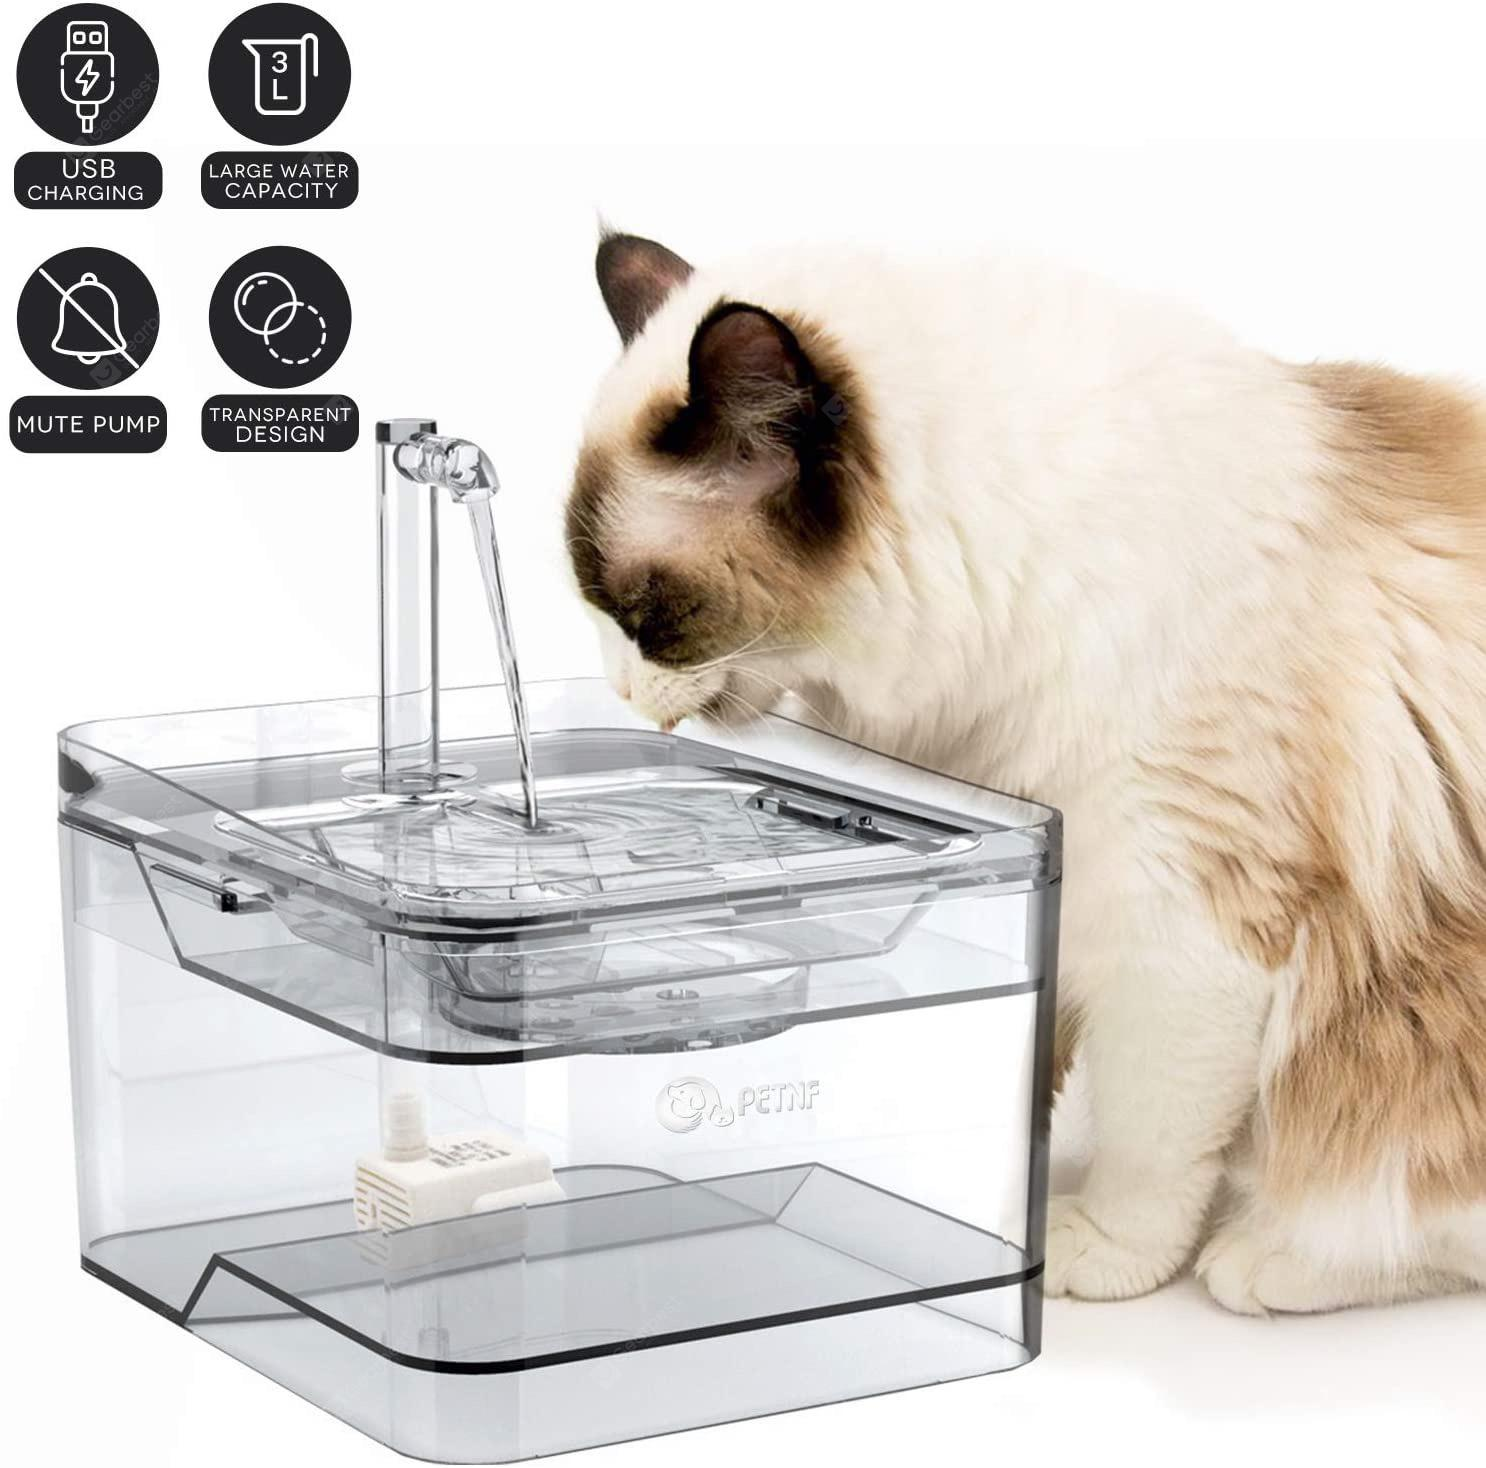 PETNF 2020 Upgraded Cat Fountain Dog Cat Water Fountain 100oz 3L Automatic Ultra Quiet - Transparent United States